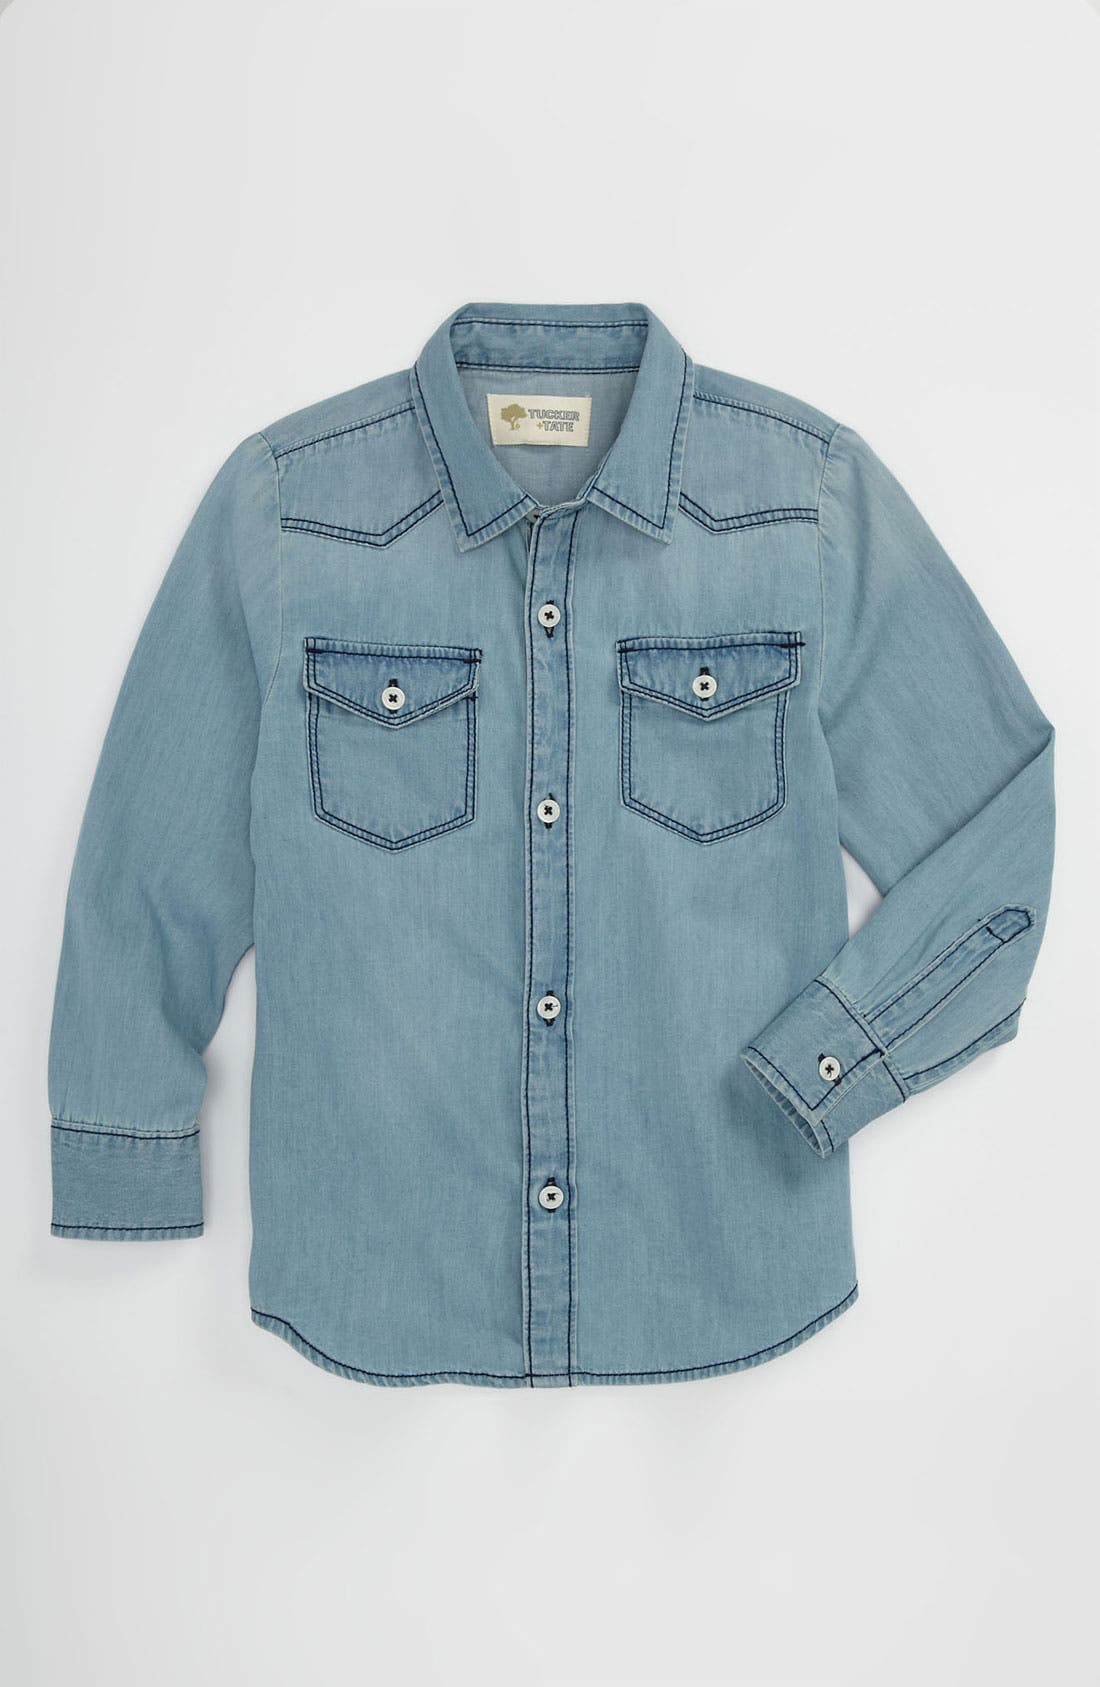 Alternate Image 1 Selected - Tucker + Tate 'Benson' Denim Shirt (Little Boys)